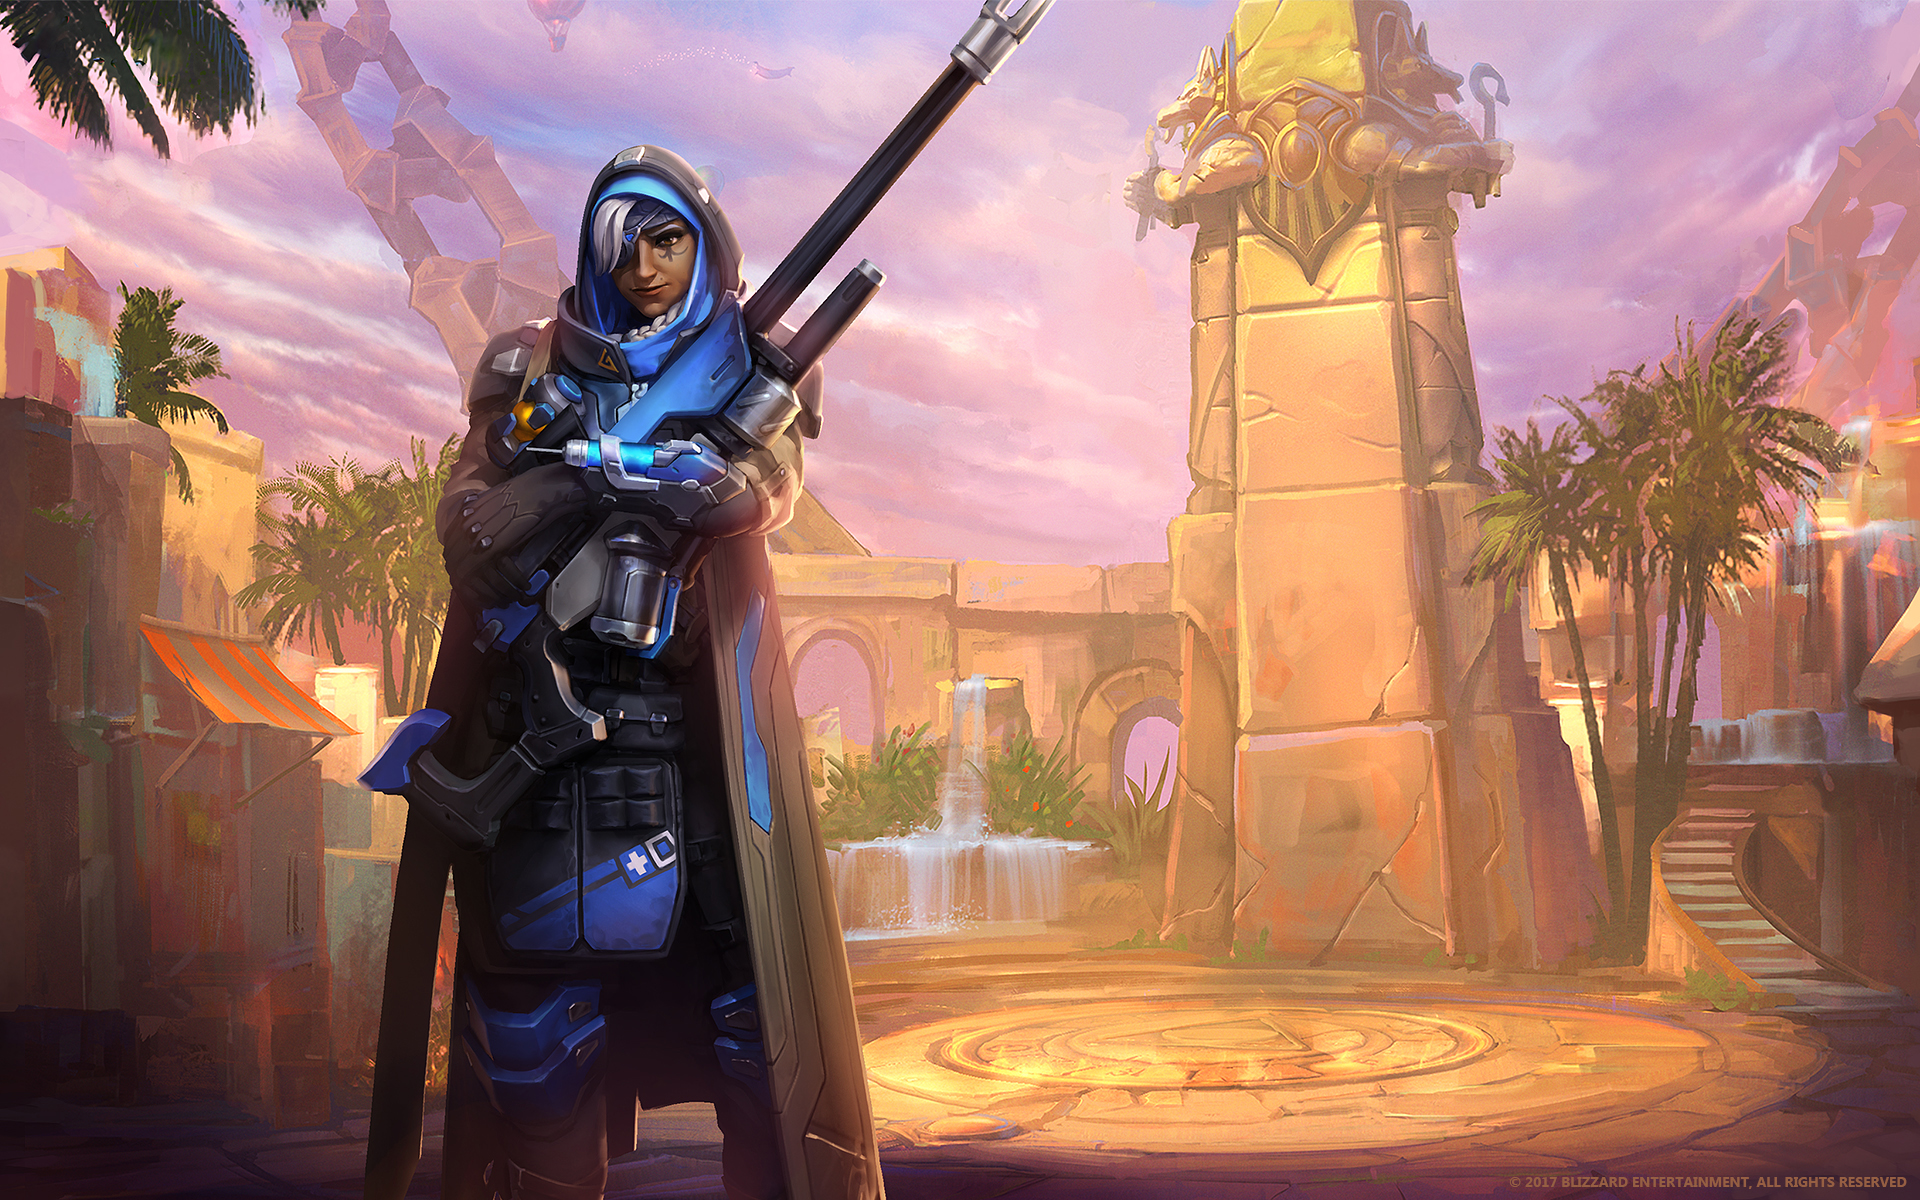 1400x900 Ana Overwatch Sniper 1400x900 Resolution Hd 4k